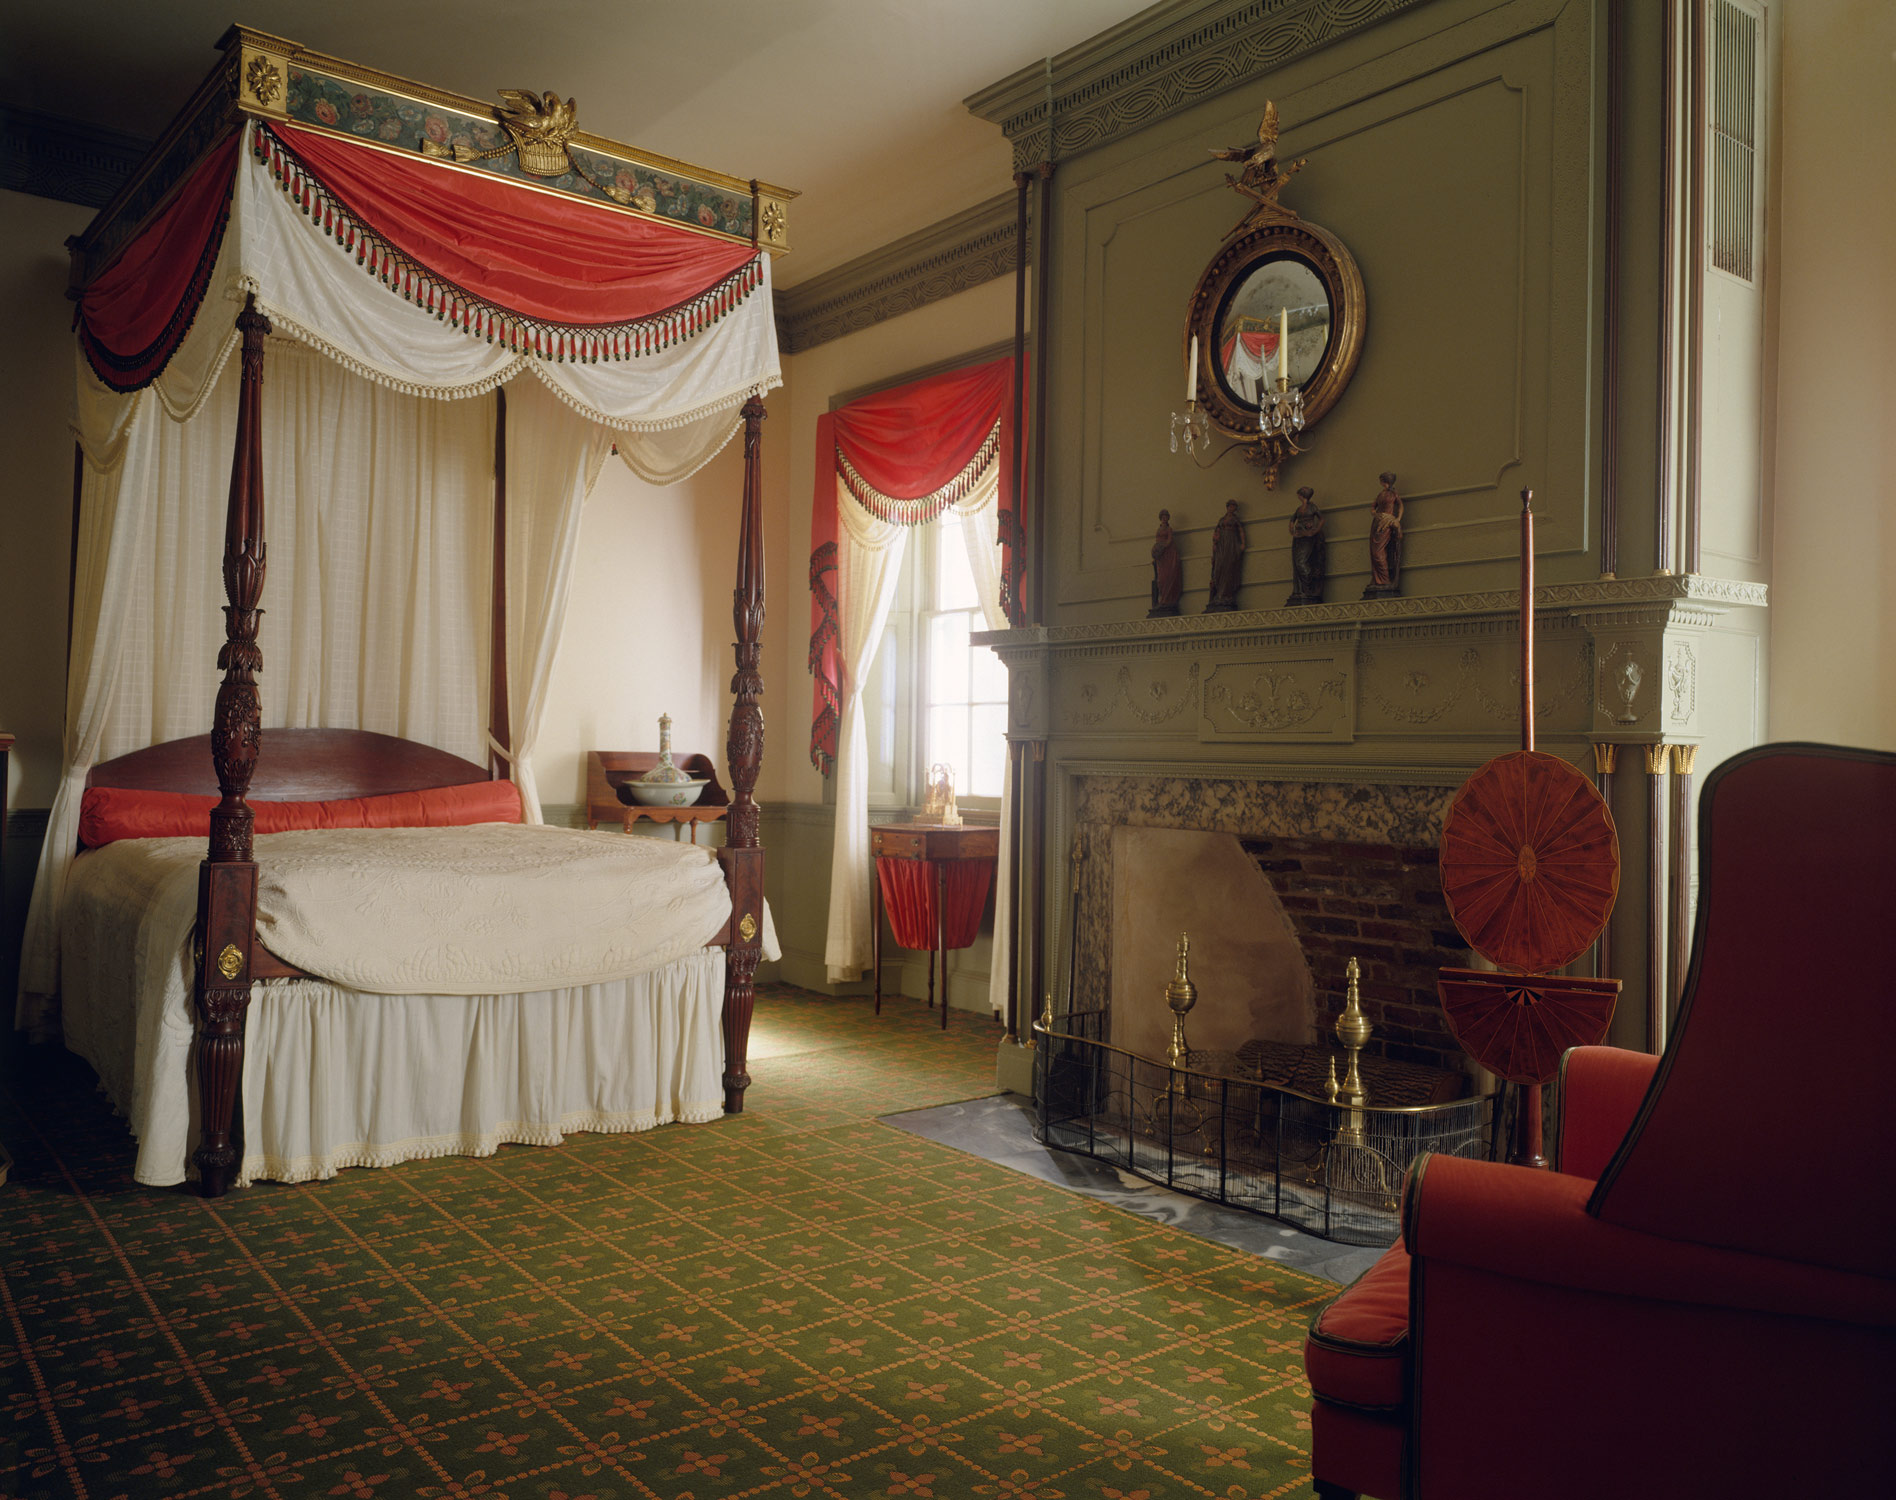 Metropolitan Bedroom Furniture American Federal Era Period Rooms Essay Heilbrunn Timeline Of